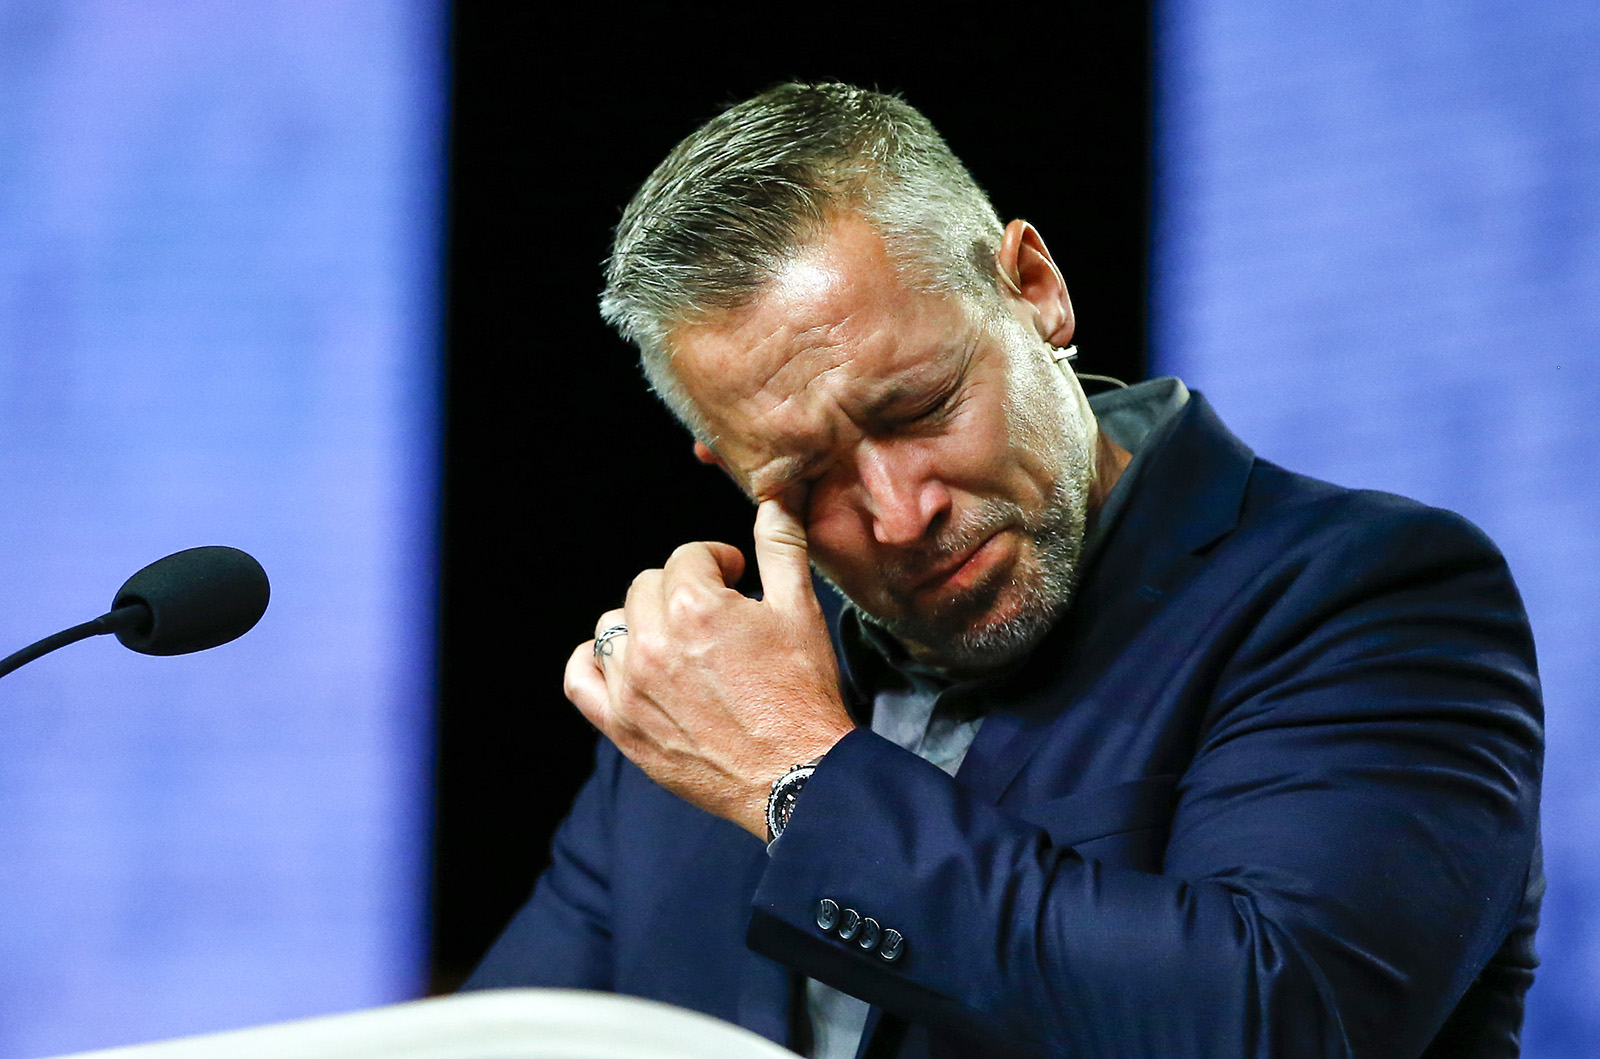 Southern Baptist Convention President J.D. Greear cries during a lamenting prayer for the sexual abuse that has occurred in the church. The prayer took place June 12, 2019, during the annual meeting of the Southern Baptist Convention at the Birmingham-Jefferson Convention Complex in Birmingham, Ala. RNS photo by Butch Dill